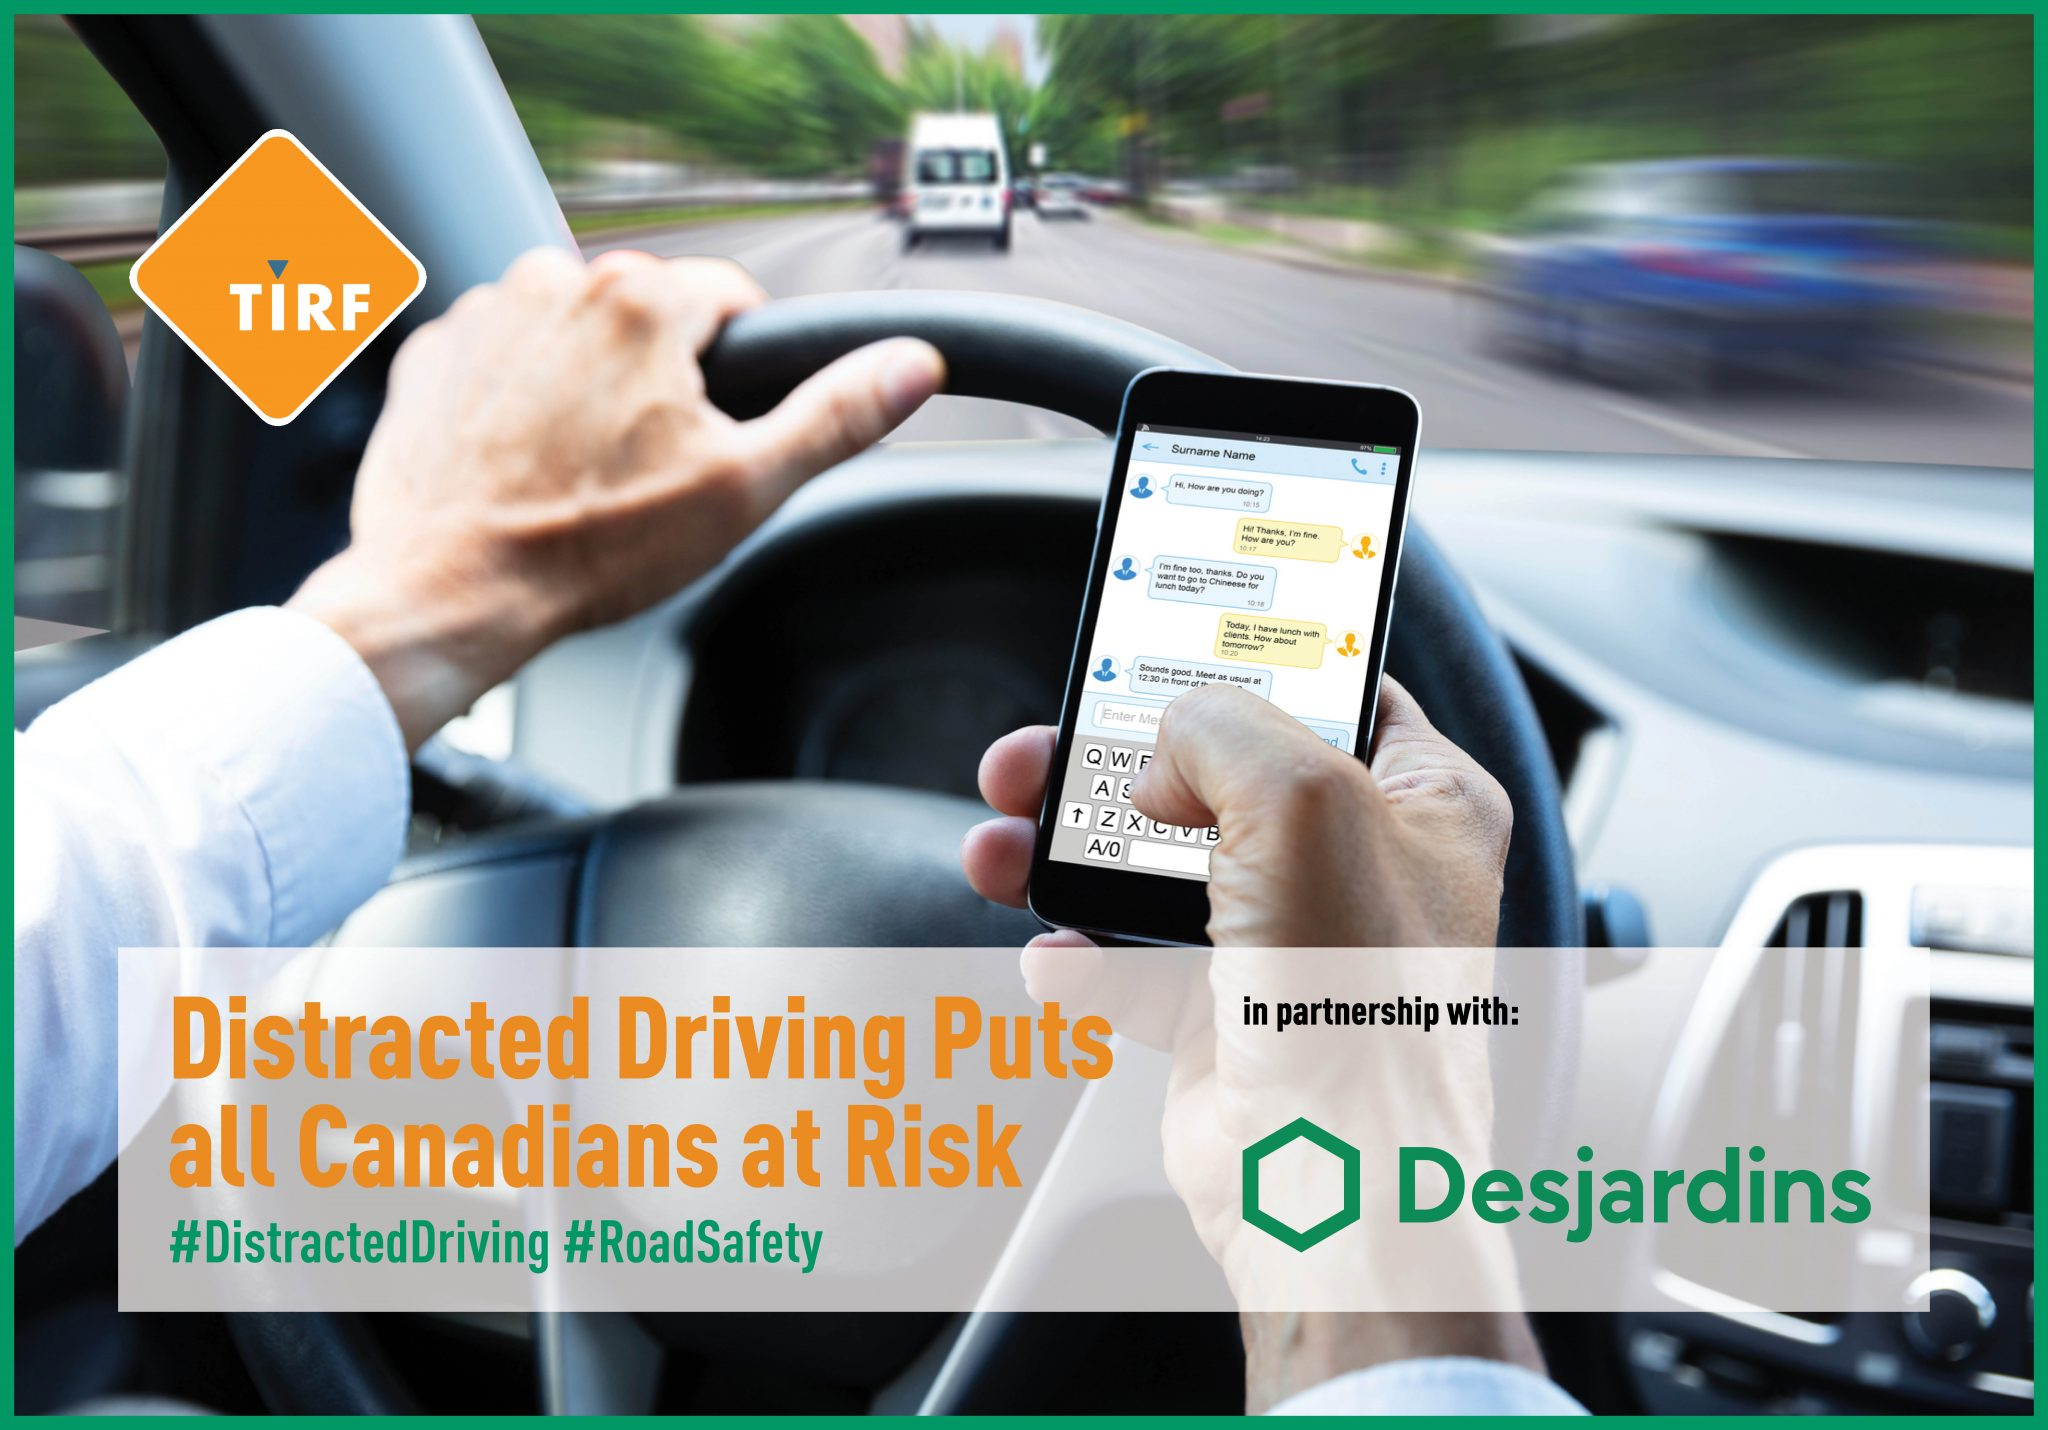 Distracted Driving Puts all Canadians at Risk